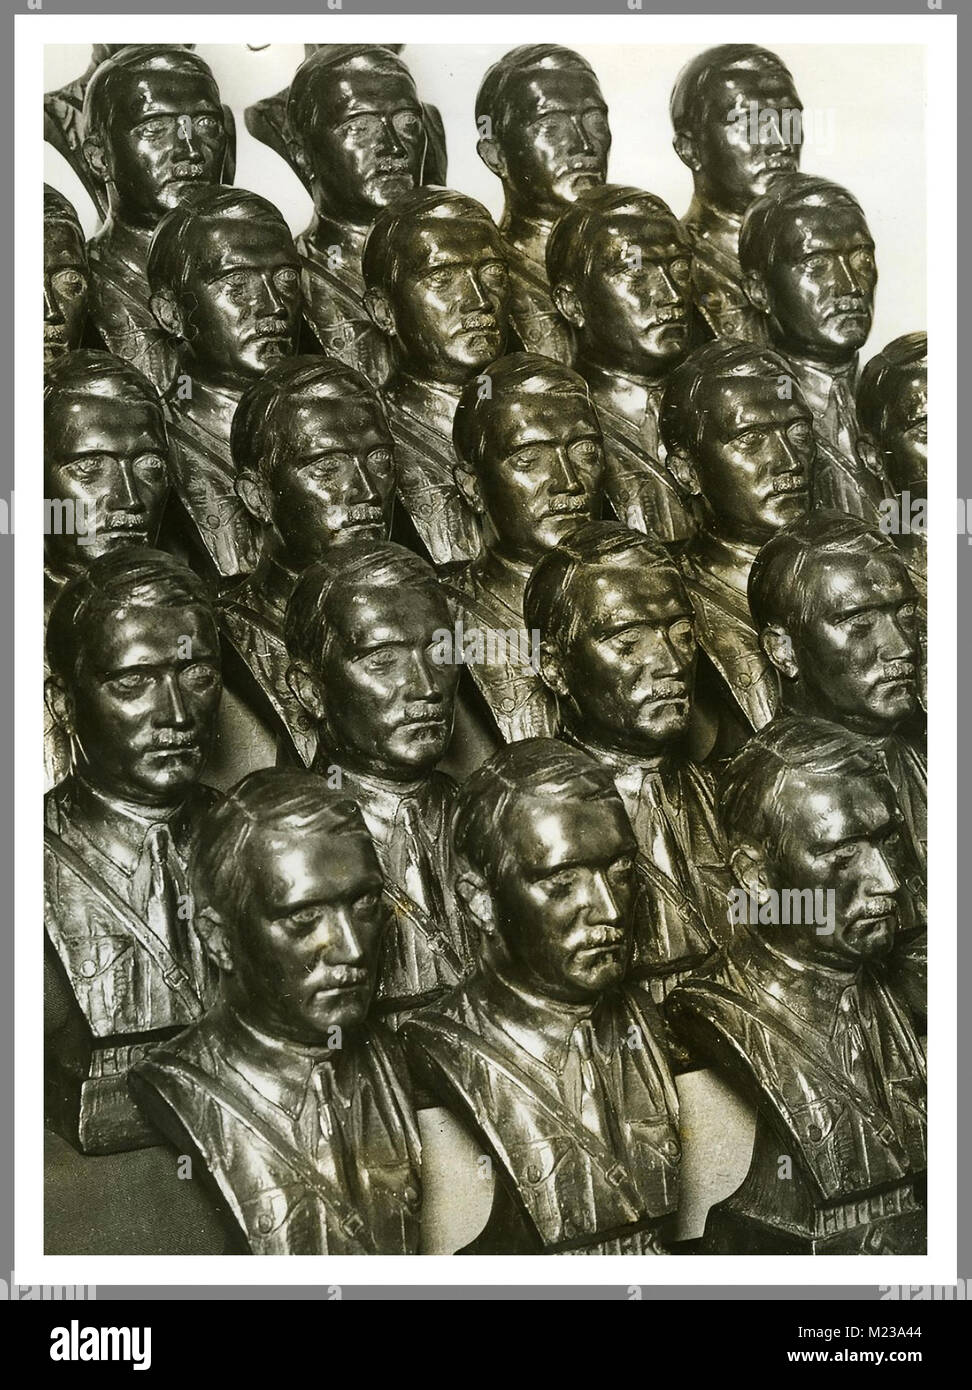 1930's Busts of Adolf Hitler produced to be placed in Nazi Germany official buildings and offices - Stock Image